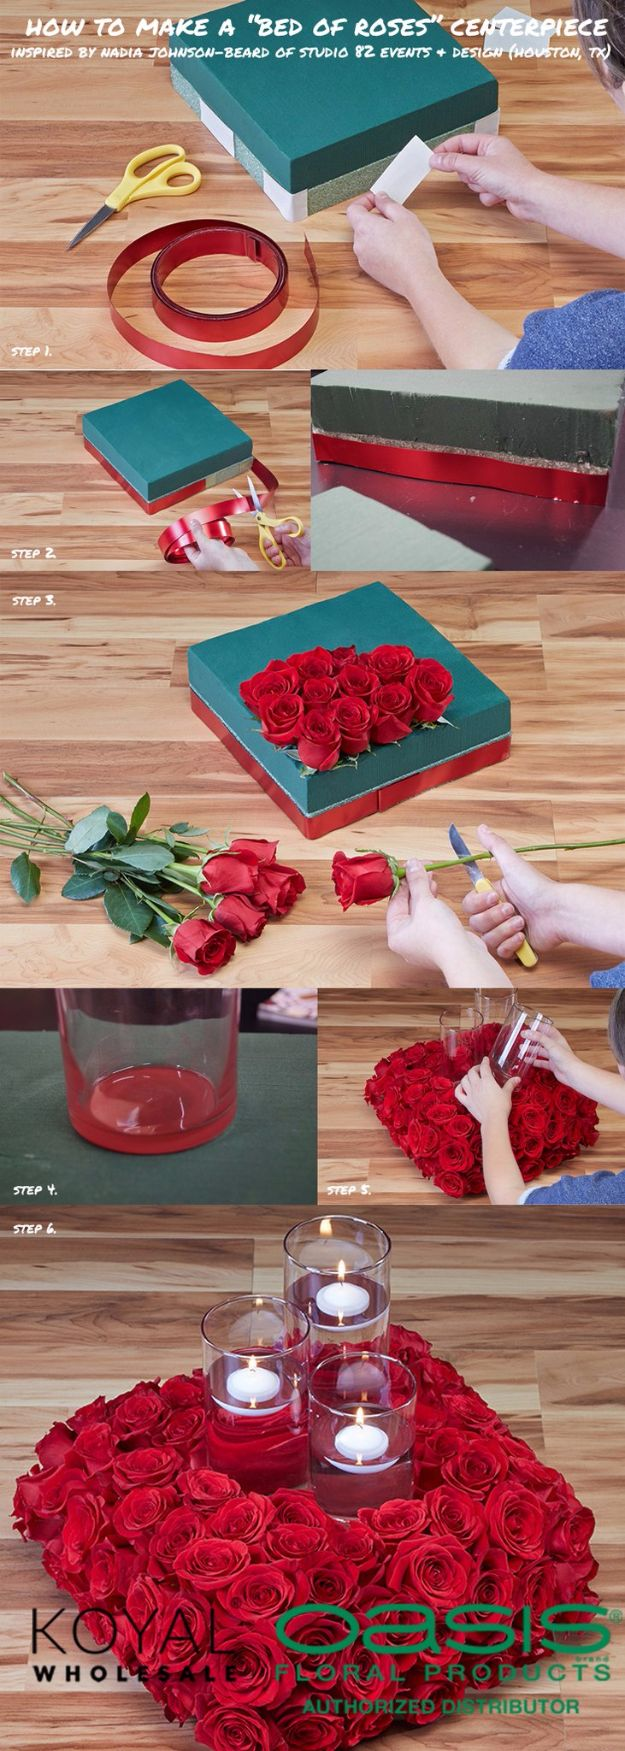 DIY Flowers for Weddings - Bed Of Roses Centerpiece - Centerpieces, Bouquets, Arrangements for Wedding Ceremony - Aisle Ideas, Rustic Bouquet Projects - Paper, Cheap, Fake Floral, Silk Flower Centerpiece To Make For Brides on A Budget - Decor for Spring, Summer, Winter and Fall http://diyjoy.com/diy-flowers-for-weddings